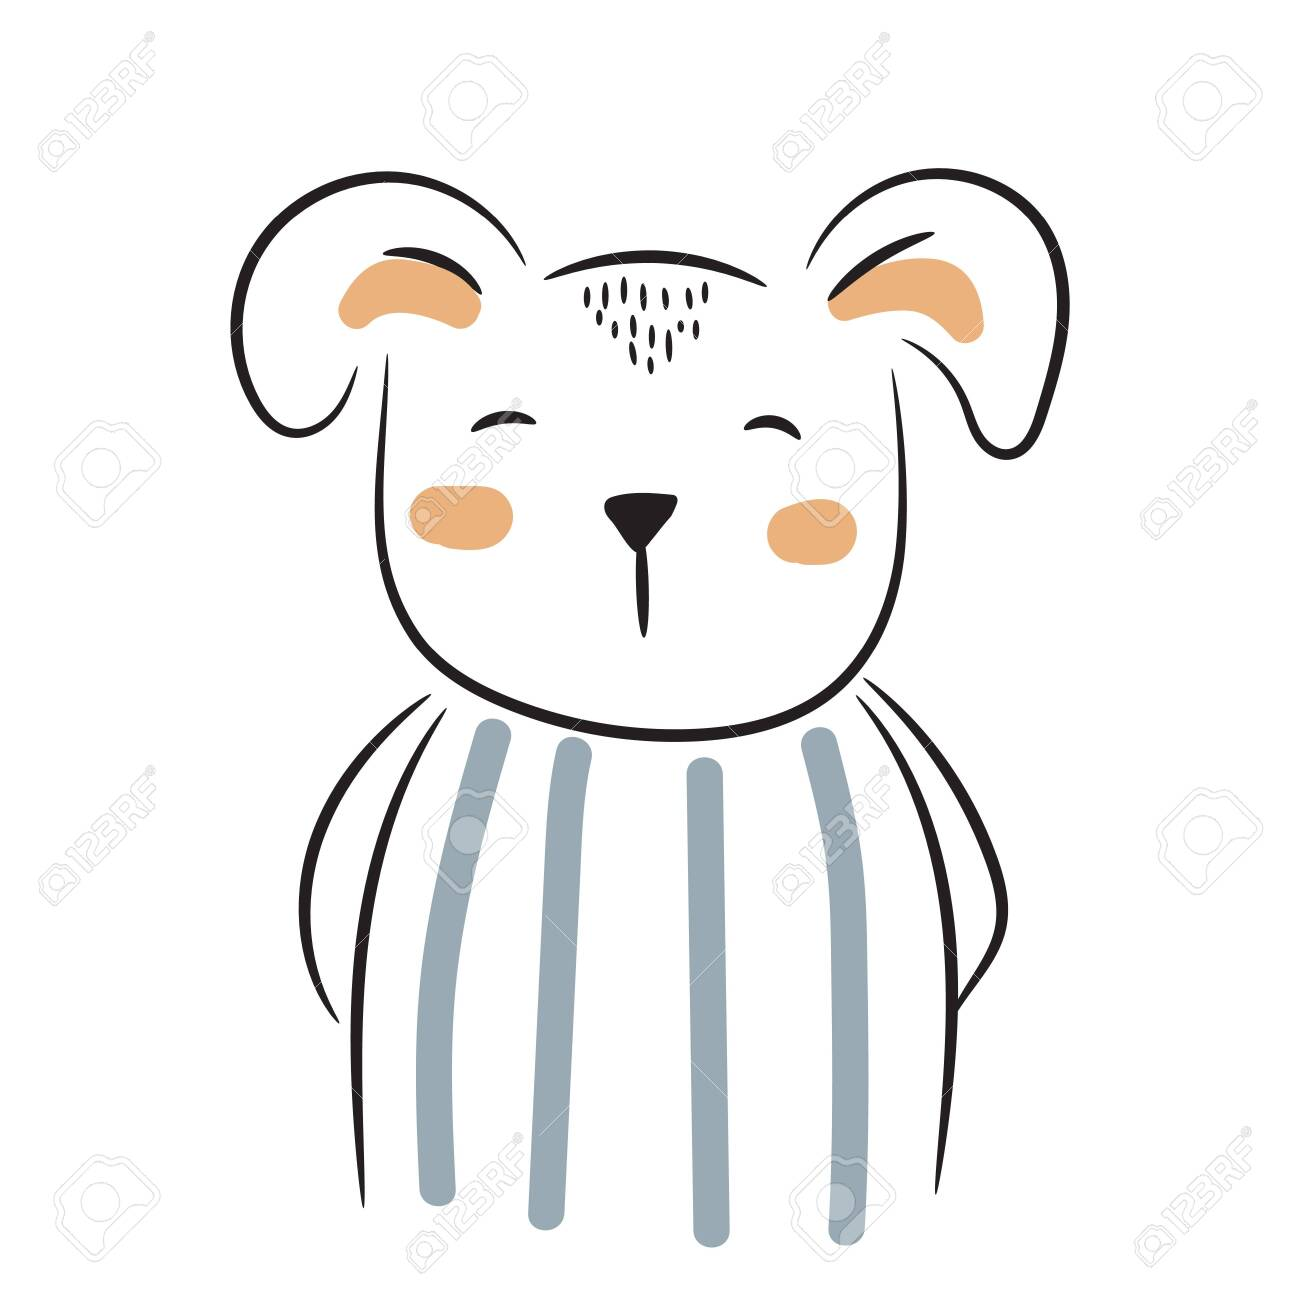 Cute Doodle Puppy Illustration Simple Hand Drawn Baby Animal Royalty Free Cliparts Vectors And Stock Illustration Image 146908072